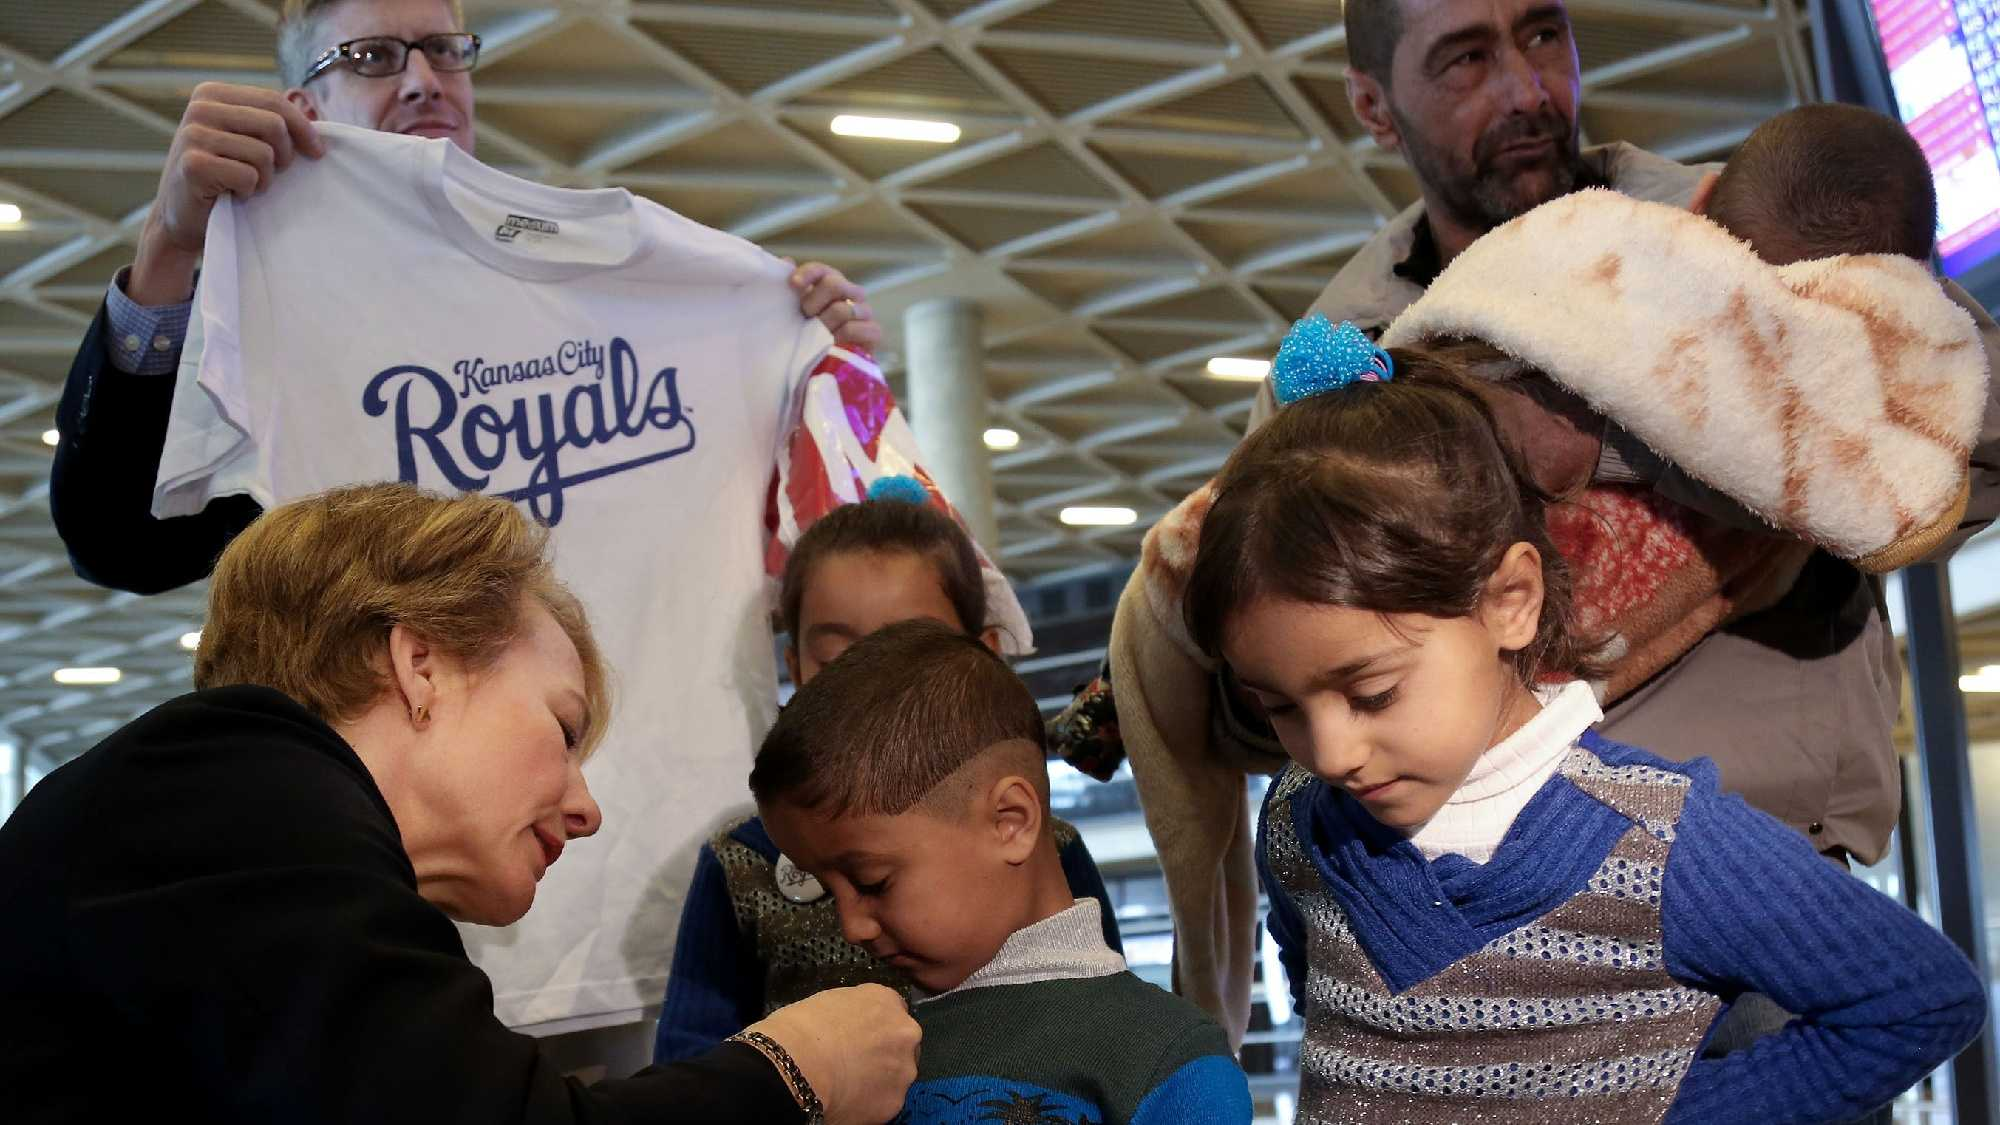 "U.S. Ambassador to Jordan Alice Wells meets with Syrian refugee Ahmad al-Abboud, top right, and his family at the International Airport of Amman, Jordan, Wednesday, April 6, 2016. The first Syrian family to be resettled to the U.S. under its speeded-up ""surge operation"" departed to the United States Wednesday from the Jordanian capital, Amman. Al-Abboud, who is being resettled with his wife and five children, said that although he is thankful to Jordan — where he has lived for three years after fleeing Syria's civil war — he is hopeful of finding a better life in the U.S. (AP Photo/Raad Adayleh)"